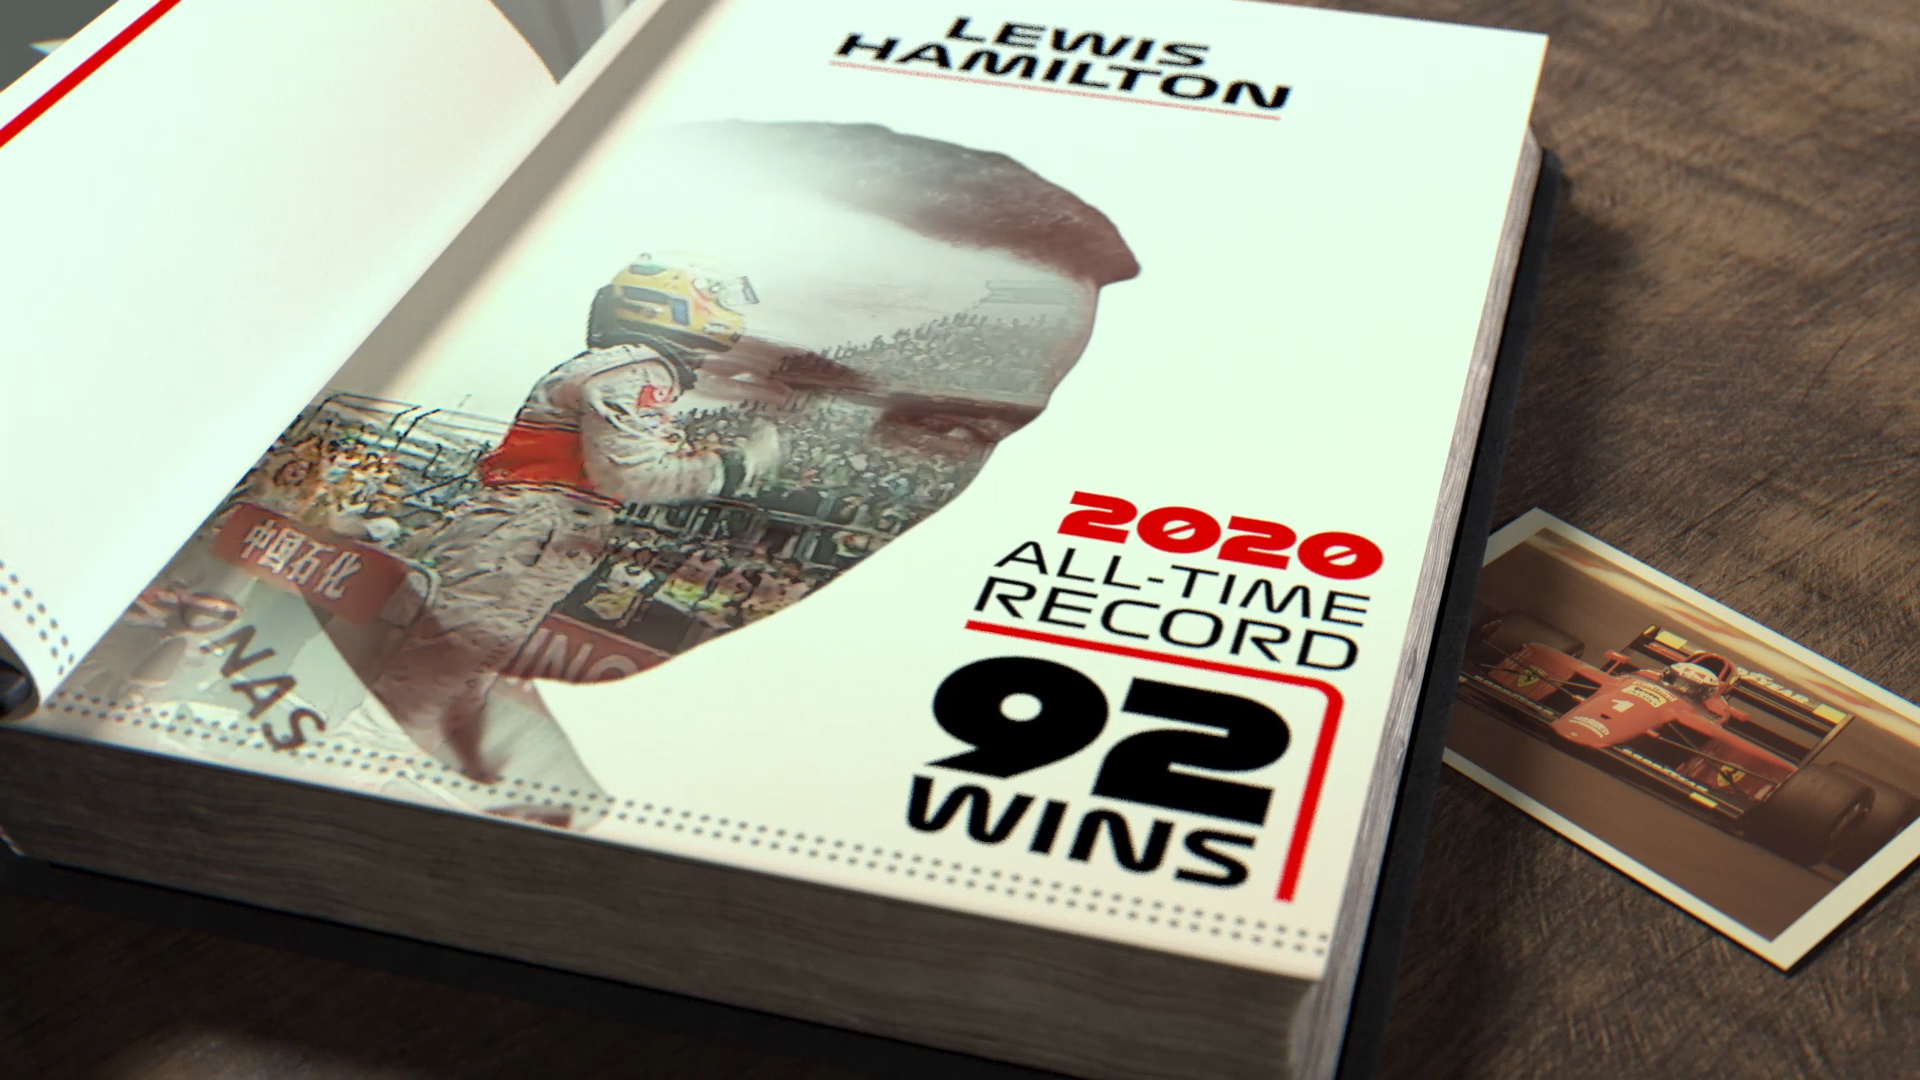 History of the Most Wins in F1 Record